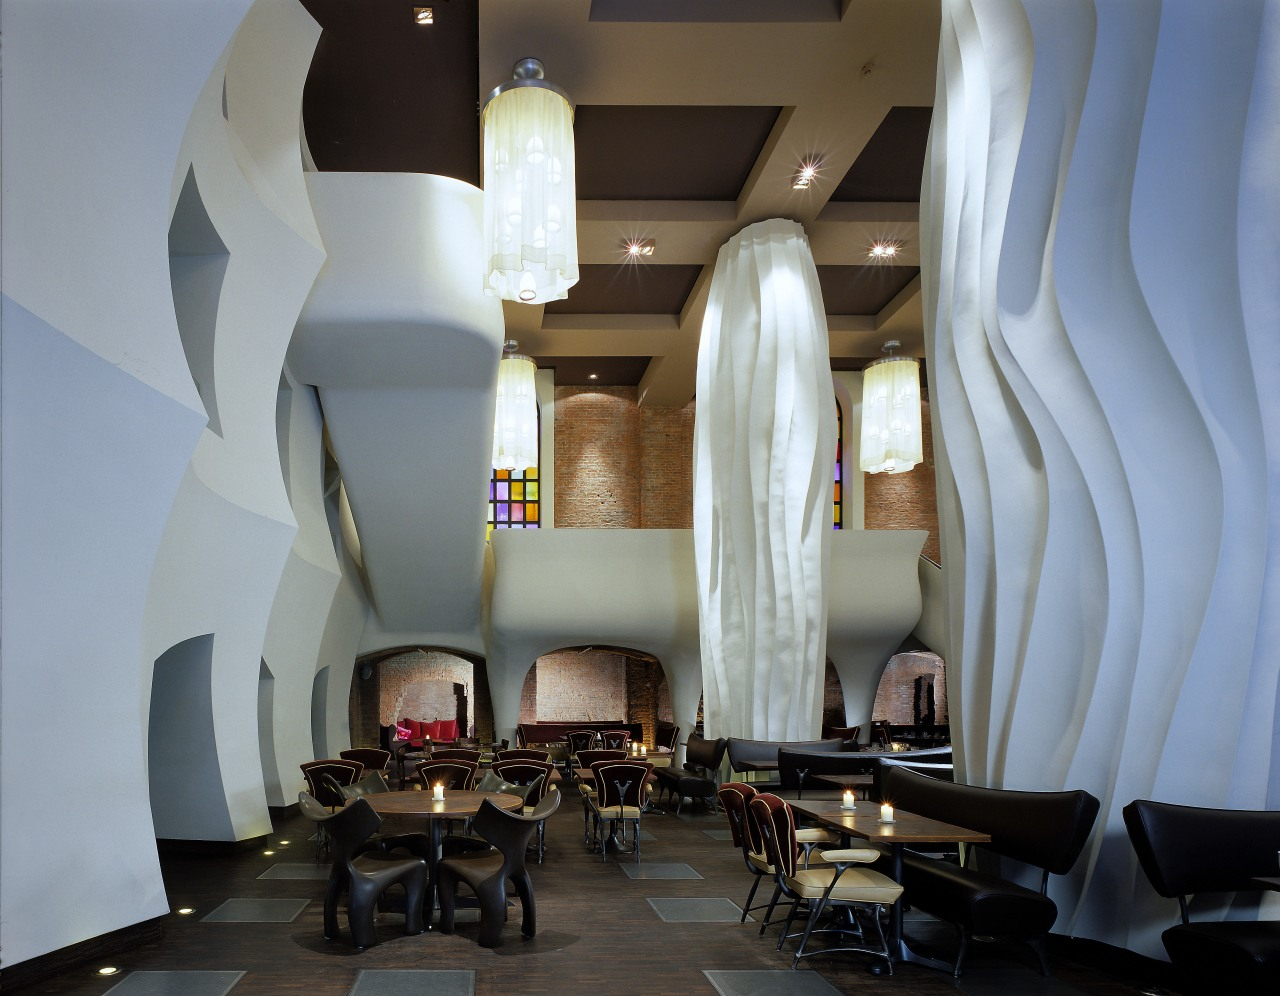 view of the restaurant that was designed and architecture, ceiling, furniture, interior design, lobby, restaurant, table, gray